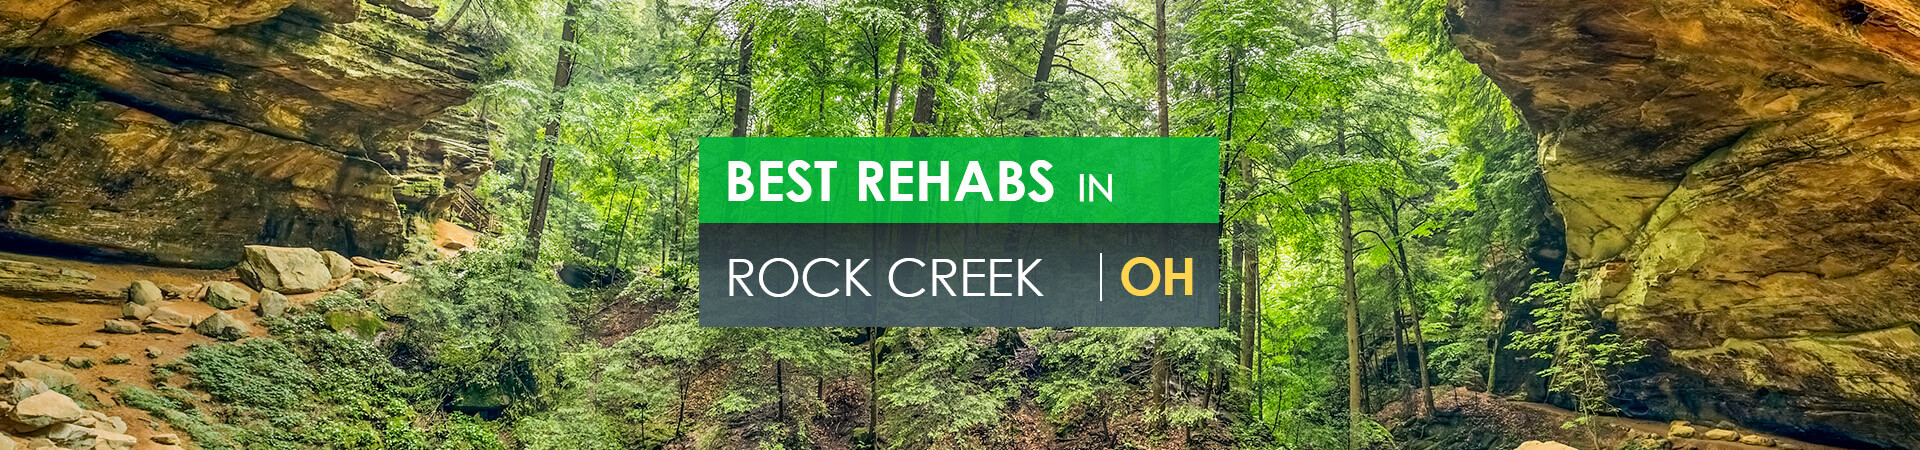 Best rehabs in Rock Creek, OH